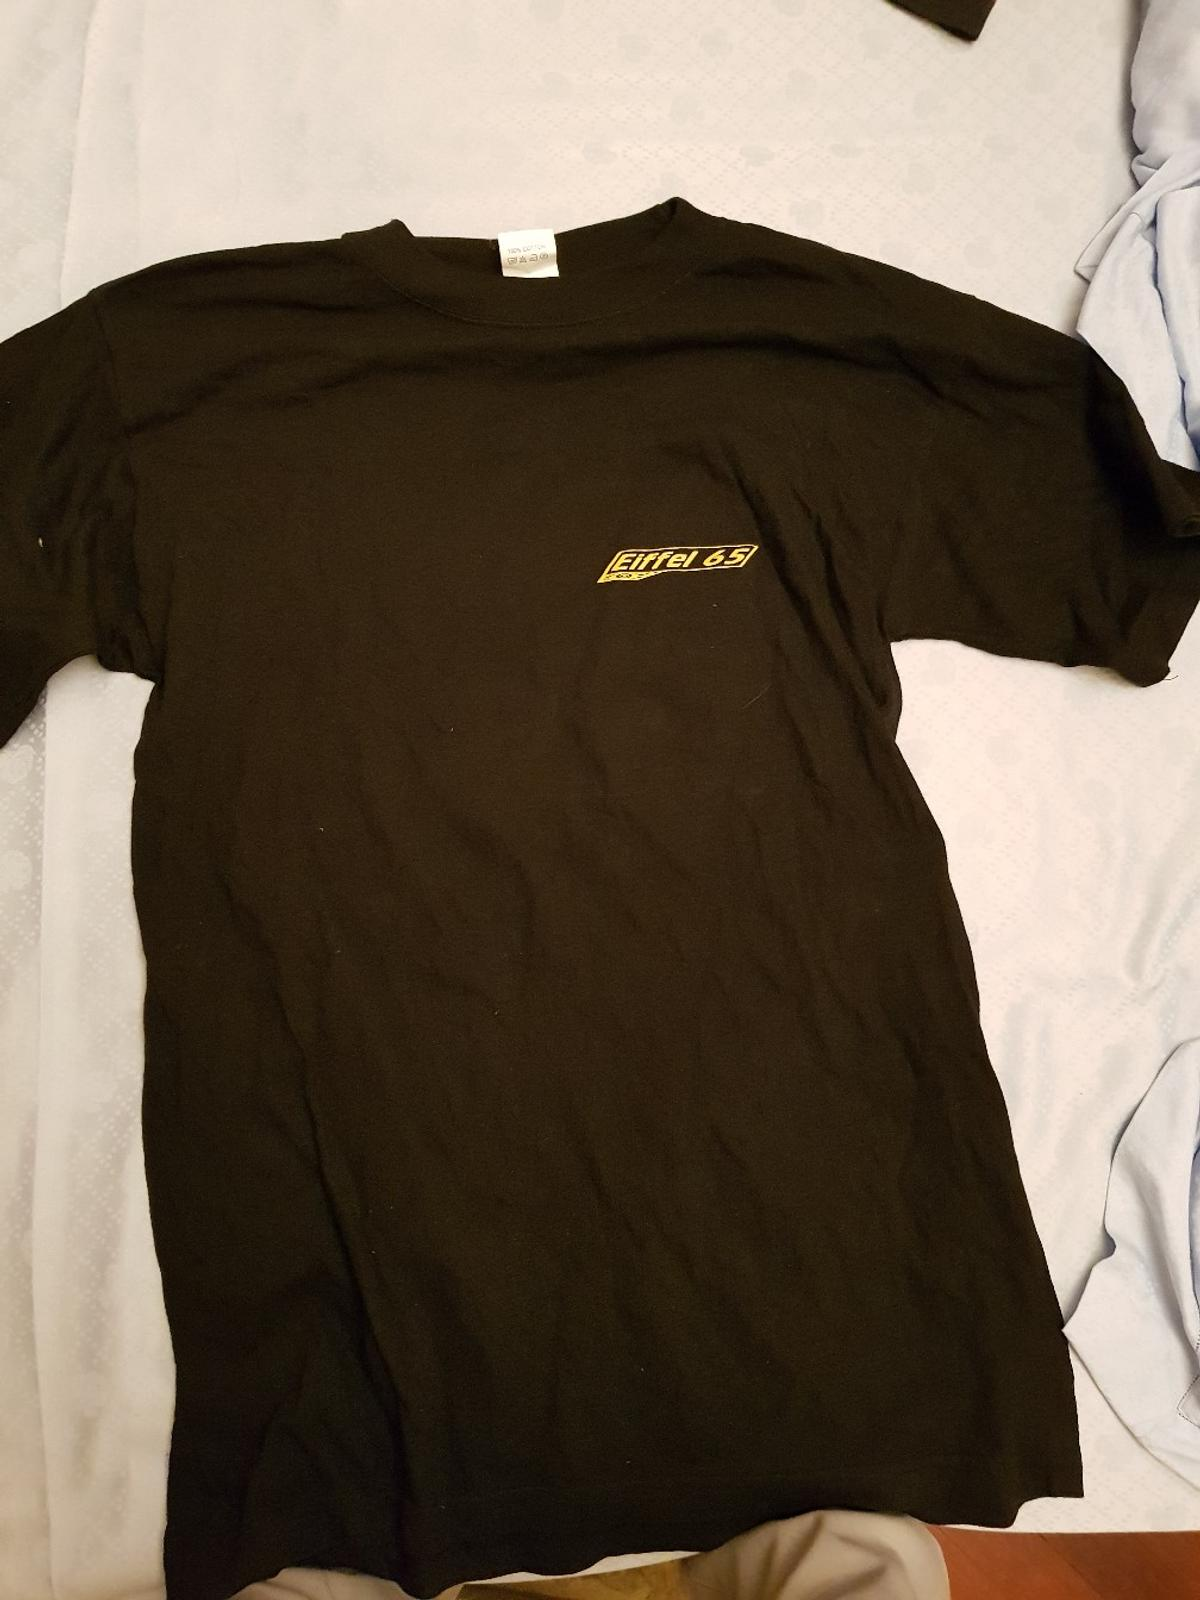 Eiffel 65 in 10137 Torino for €10 00 for sale - Shpock